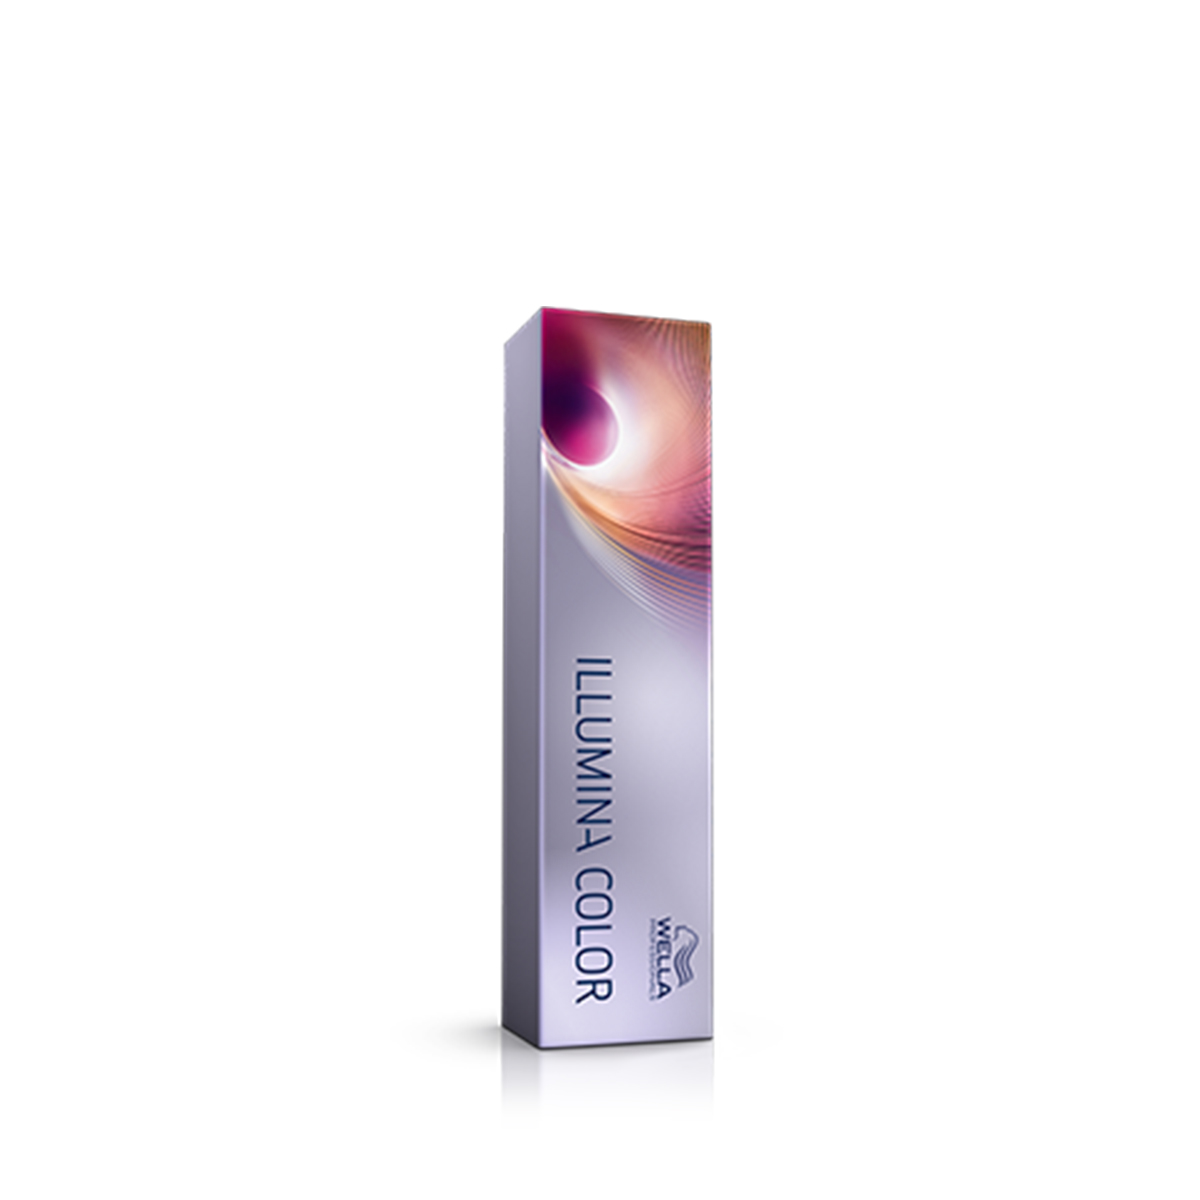 Illumina Color 60 Ml Biondo Scuro Sabbia Violetto